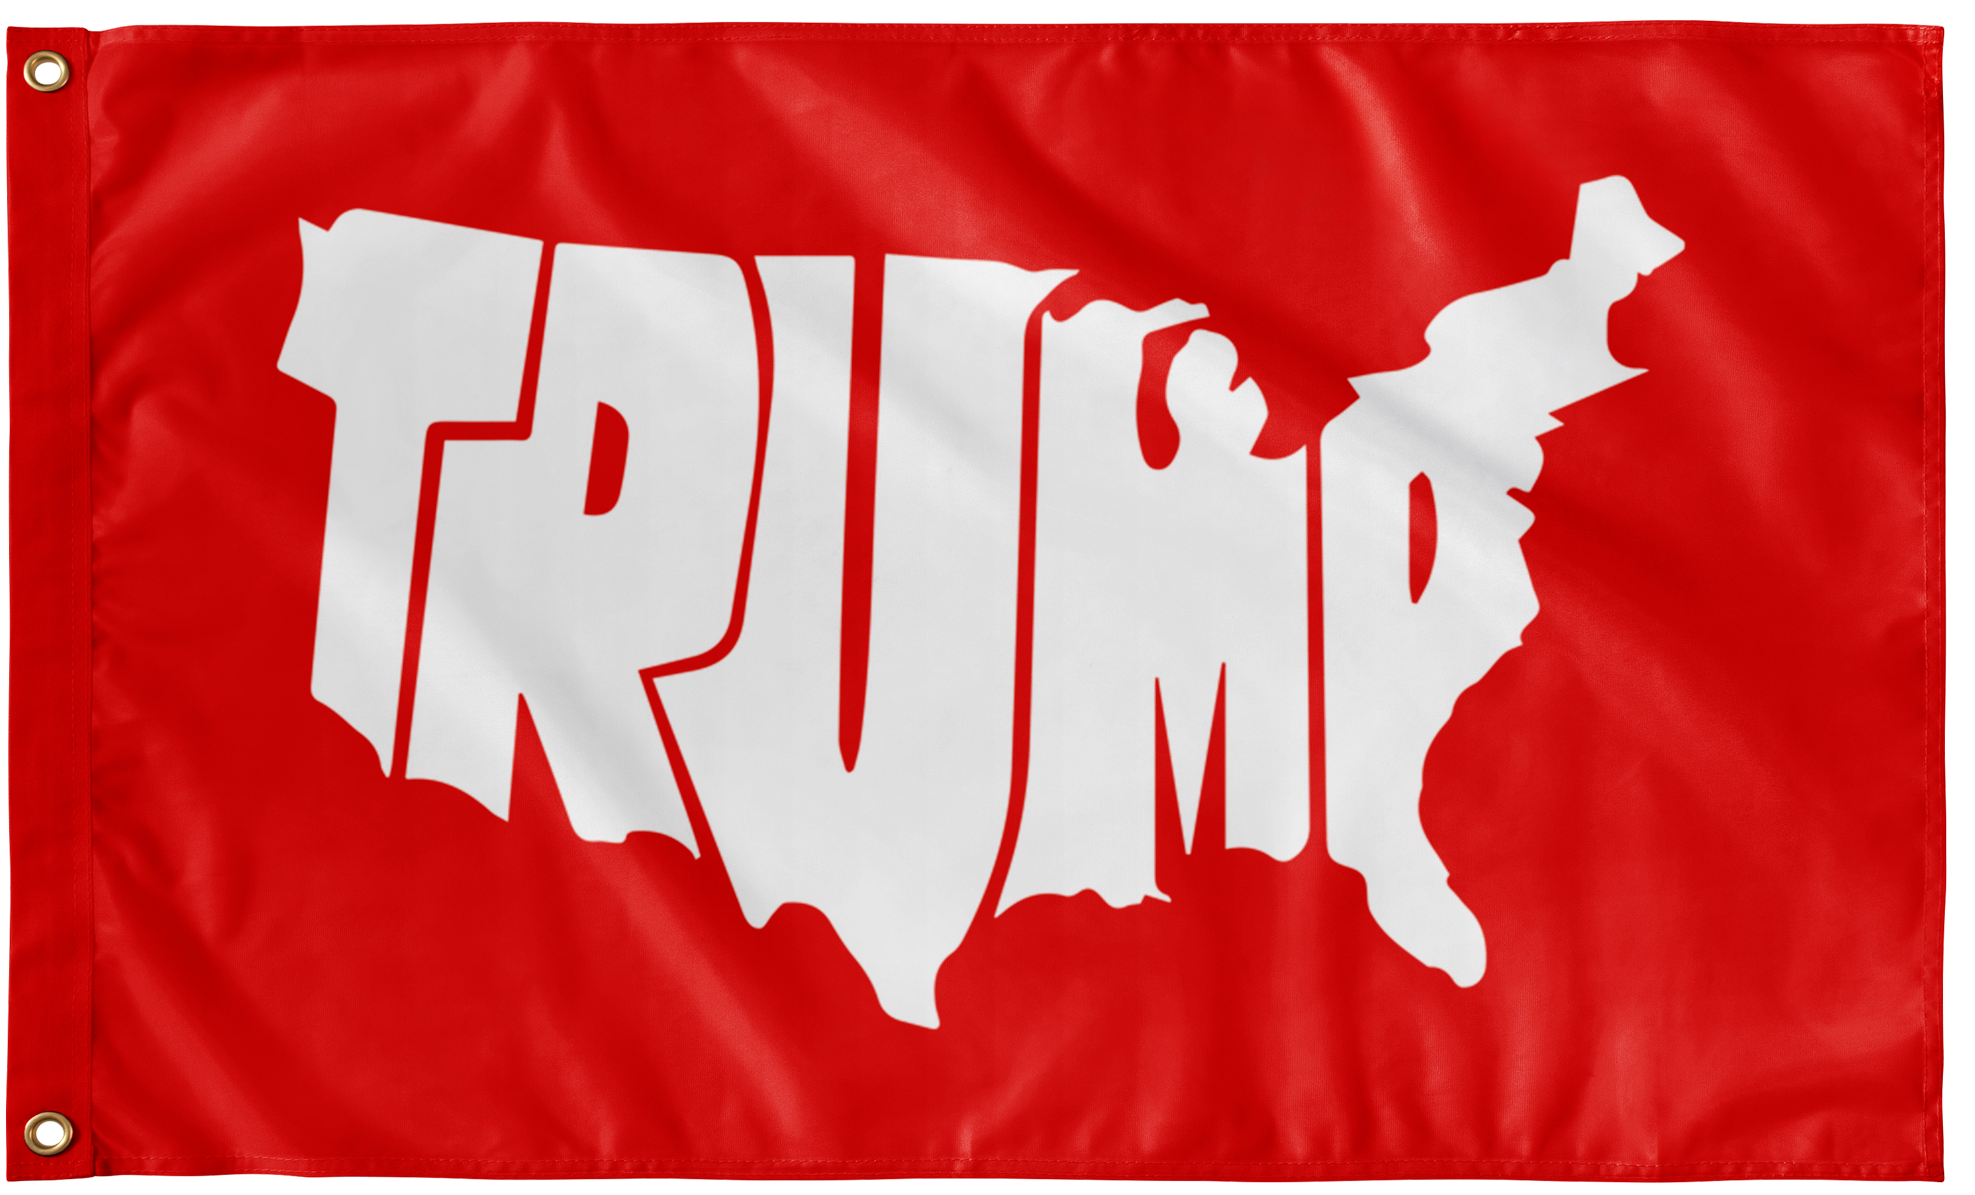 Trump Country Flag - Buy MAGA flags online.